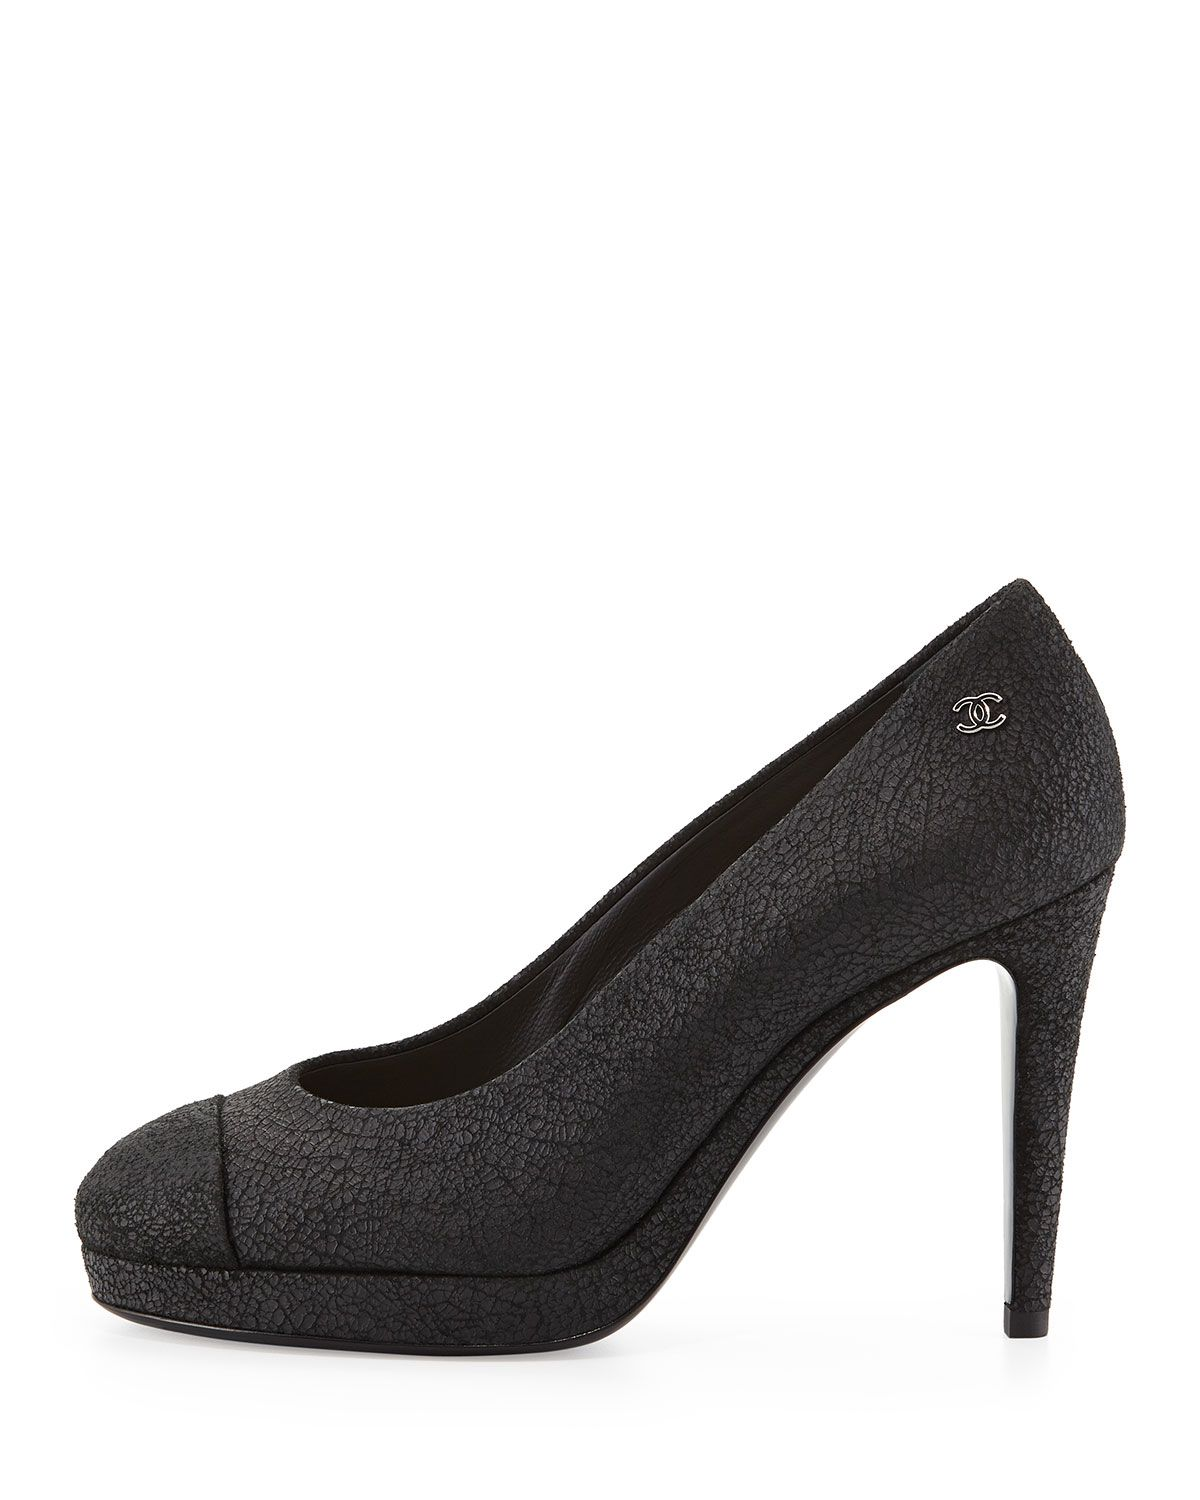 Crackled Leather Pump